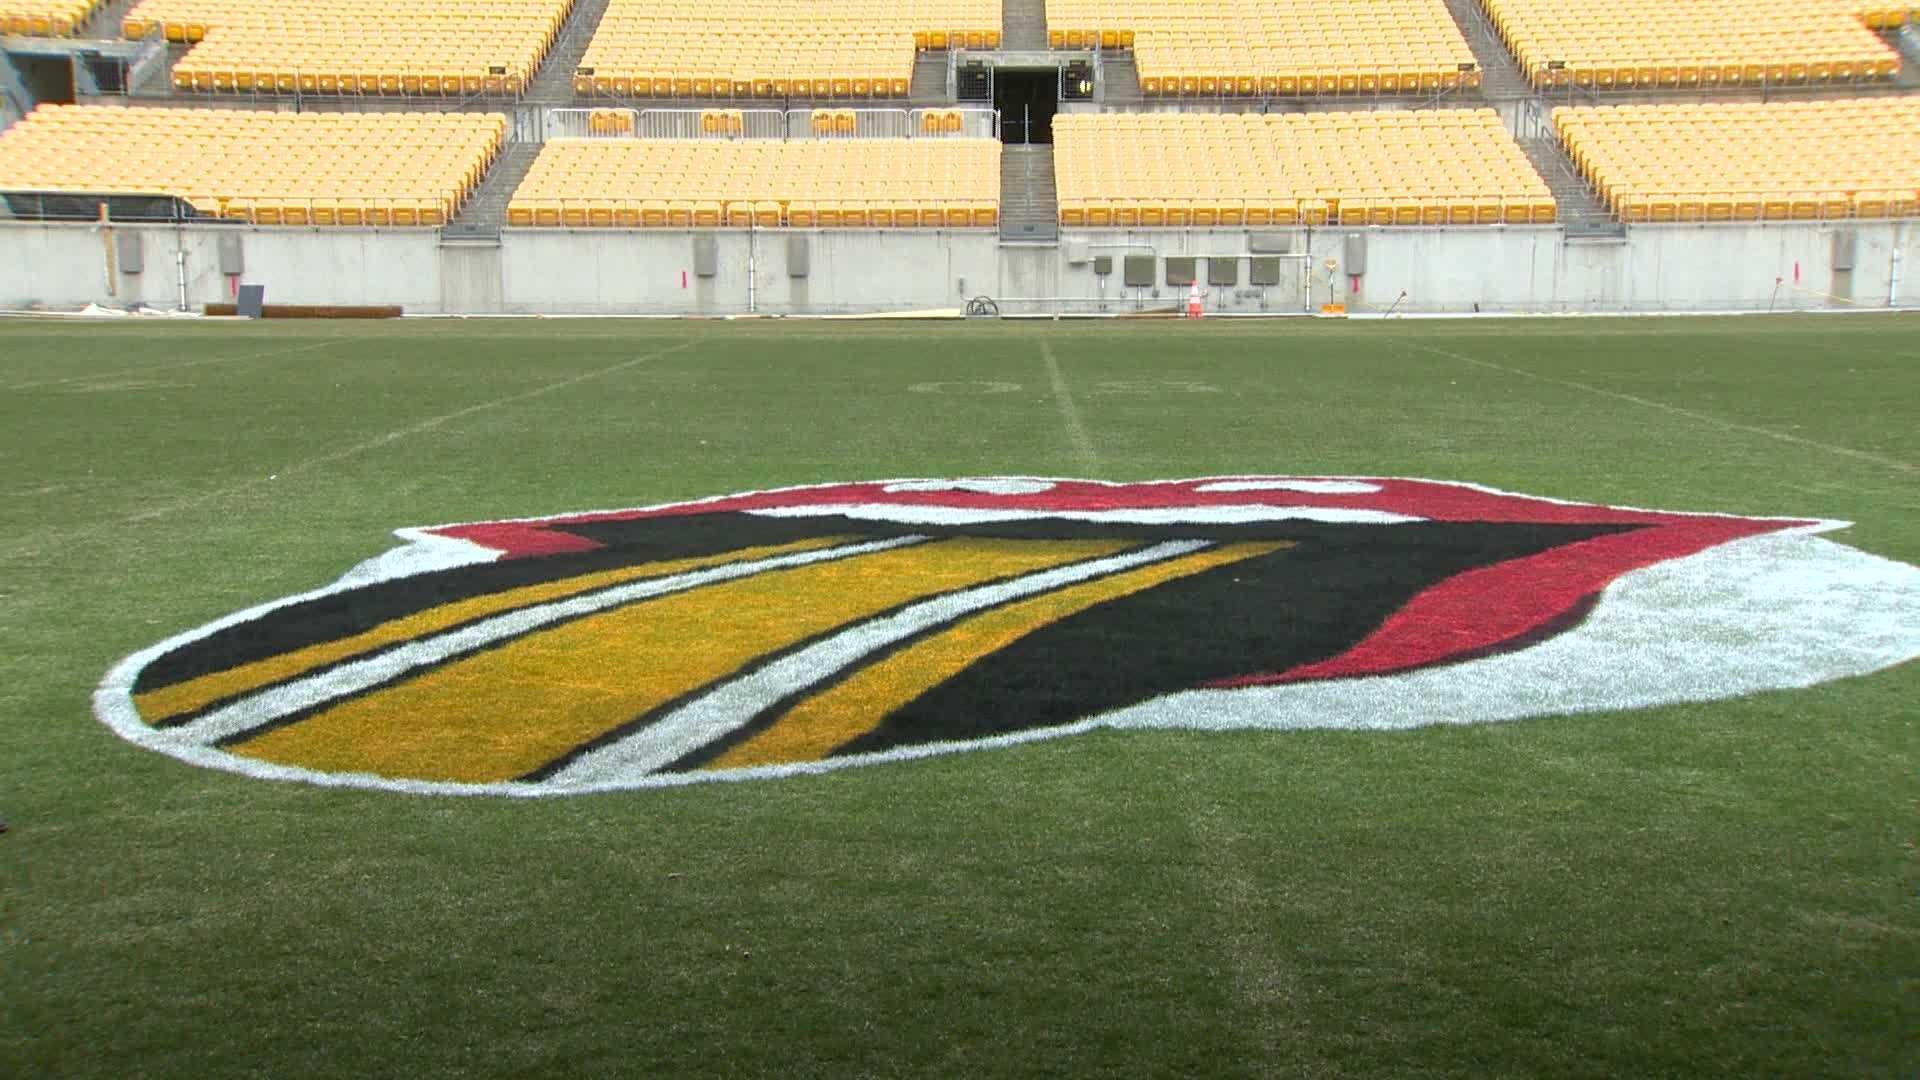 The iconic Rolling Stones logo was painted on the grass at Heinz Field Tuesday morning.